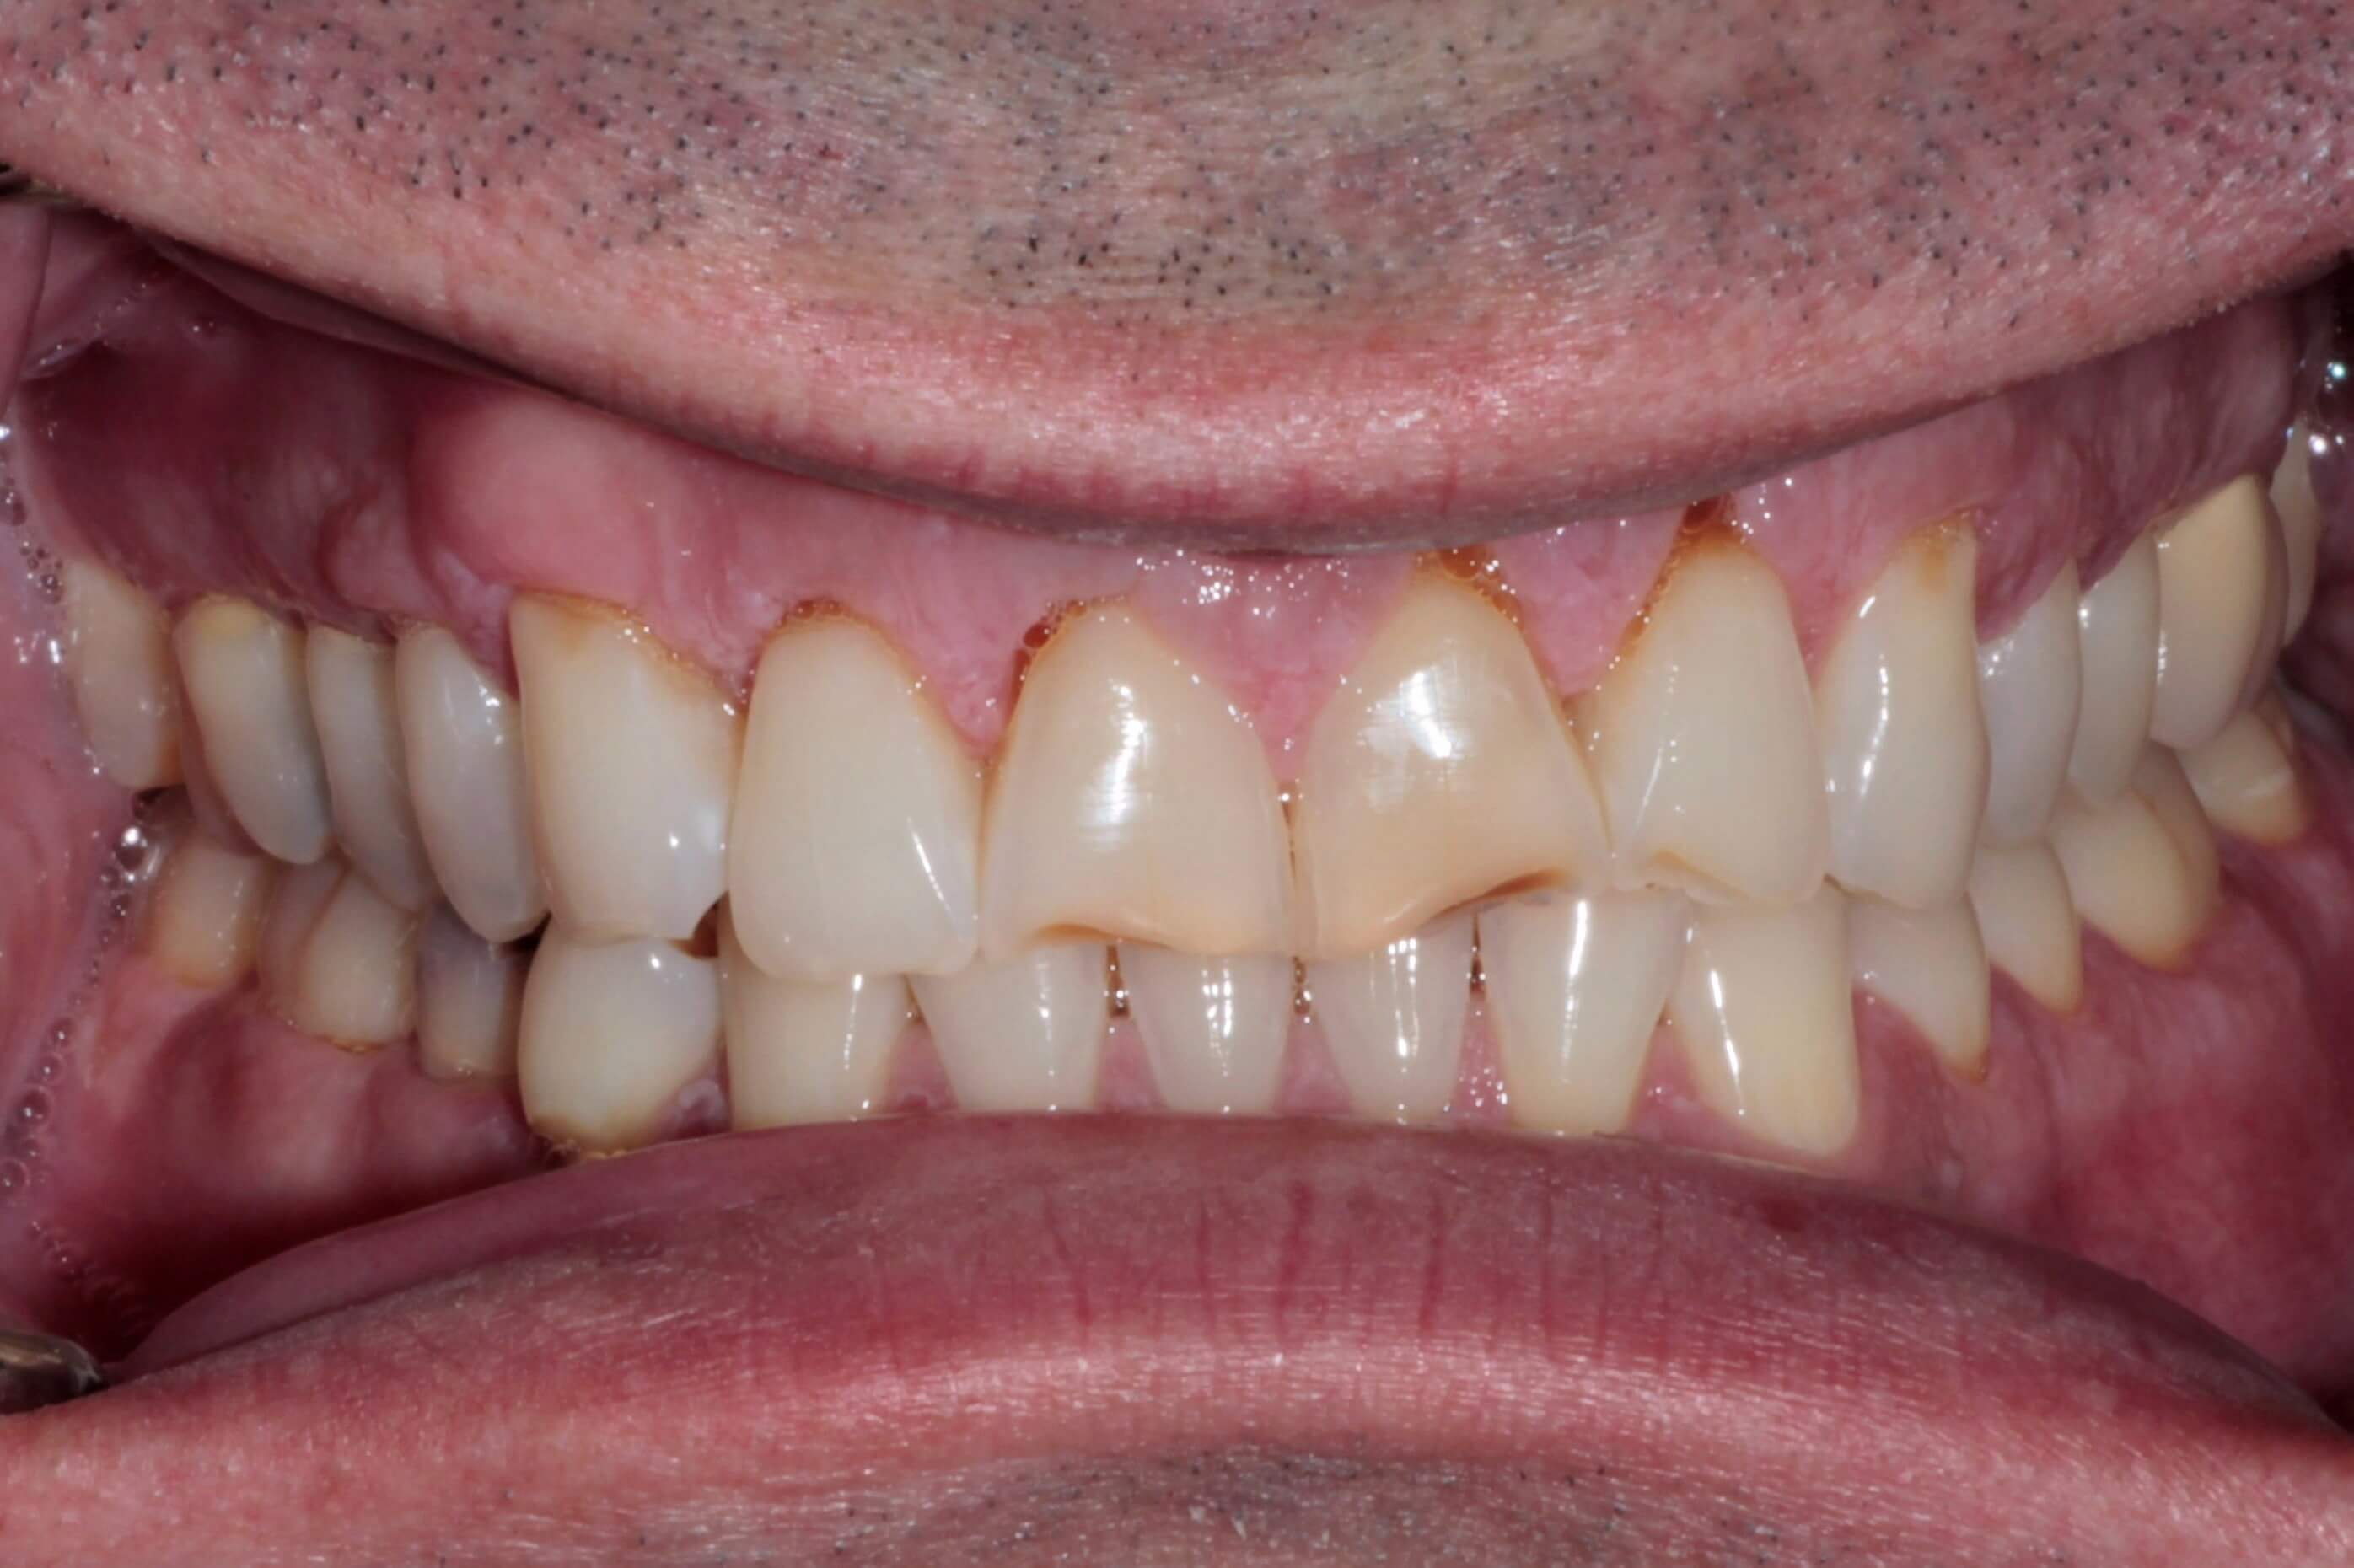 Before Veneers and Bonding